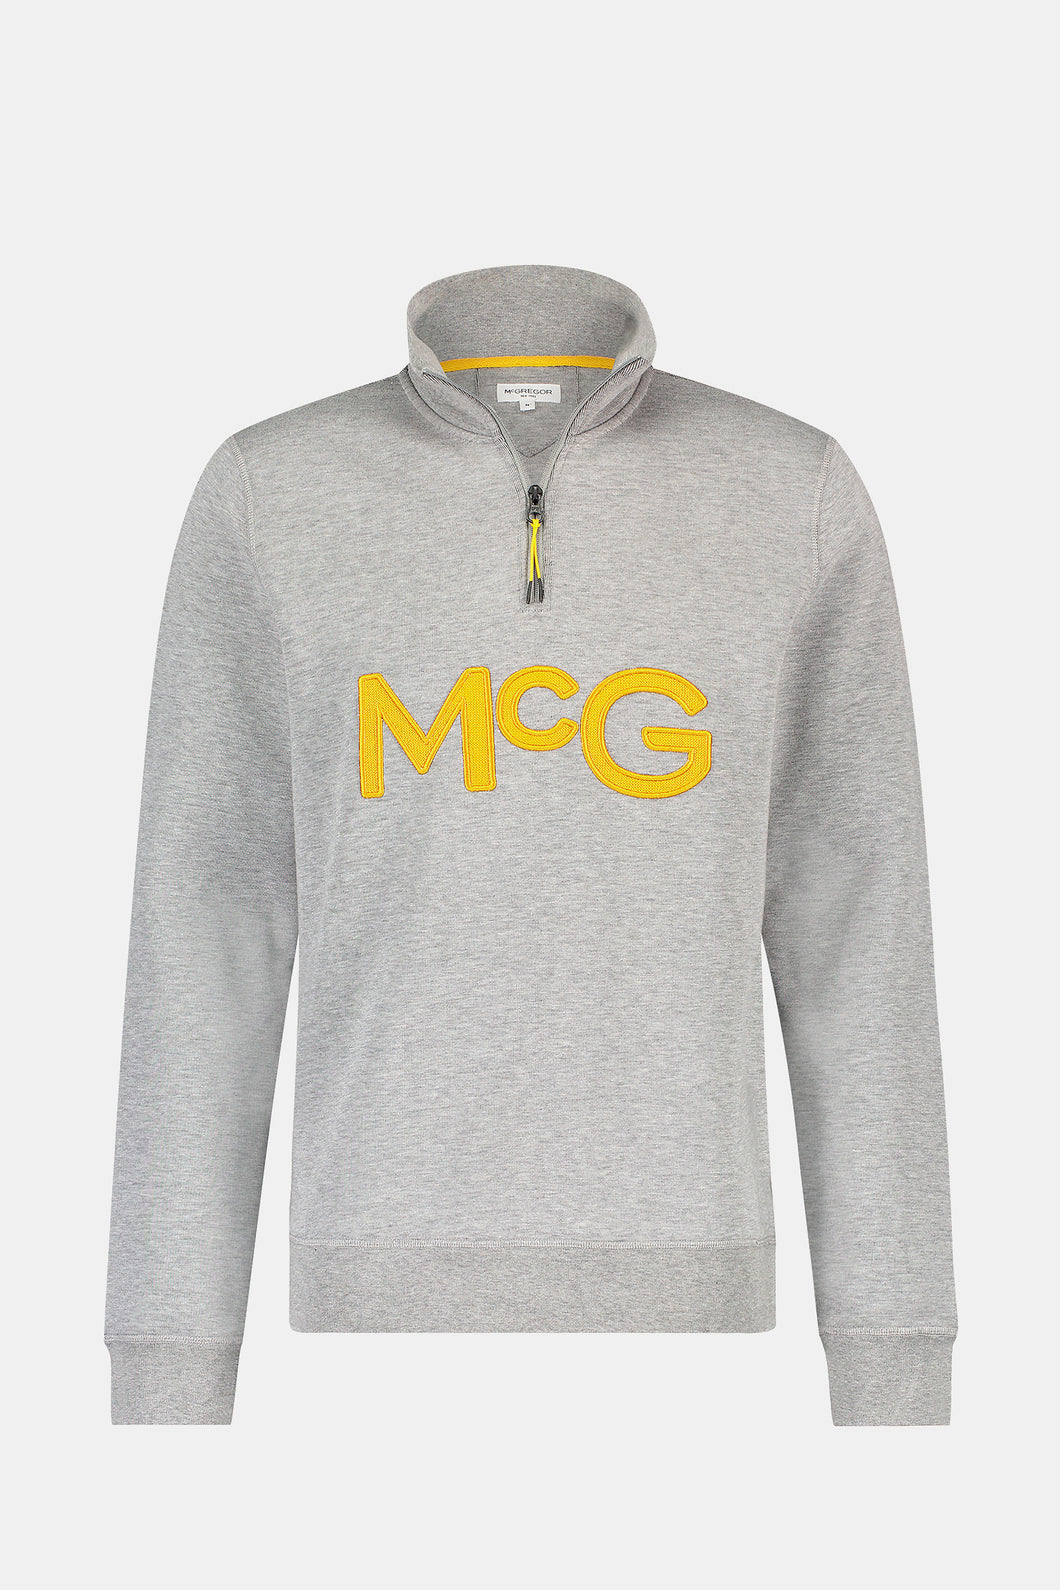 McGregor,Double Face Zip Mock Sweat